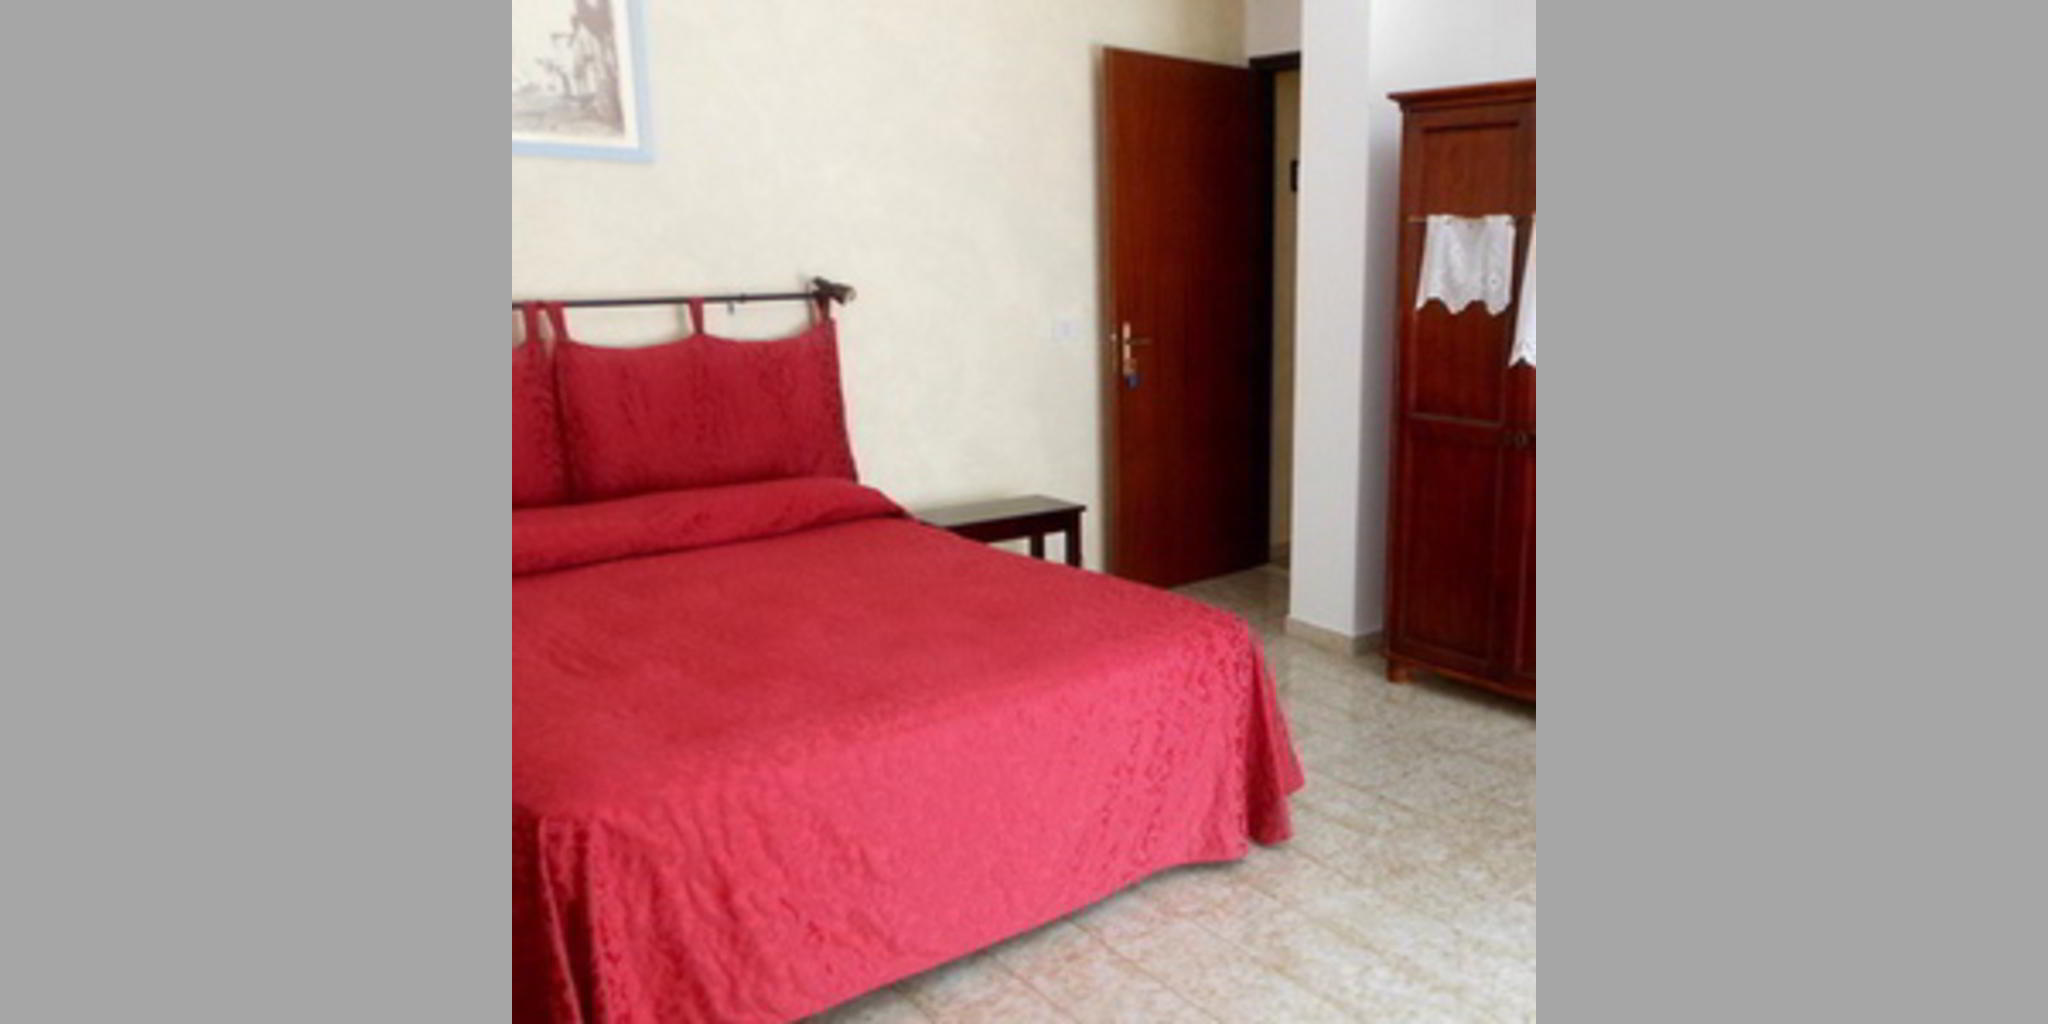 Bed & Breakfast Galati Mamertino - Galati Mamertino